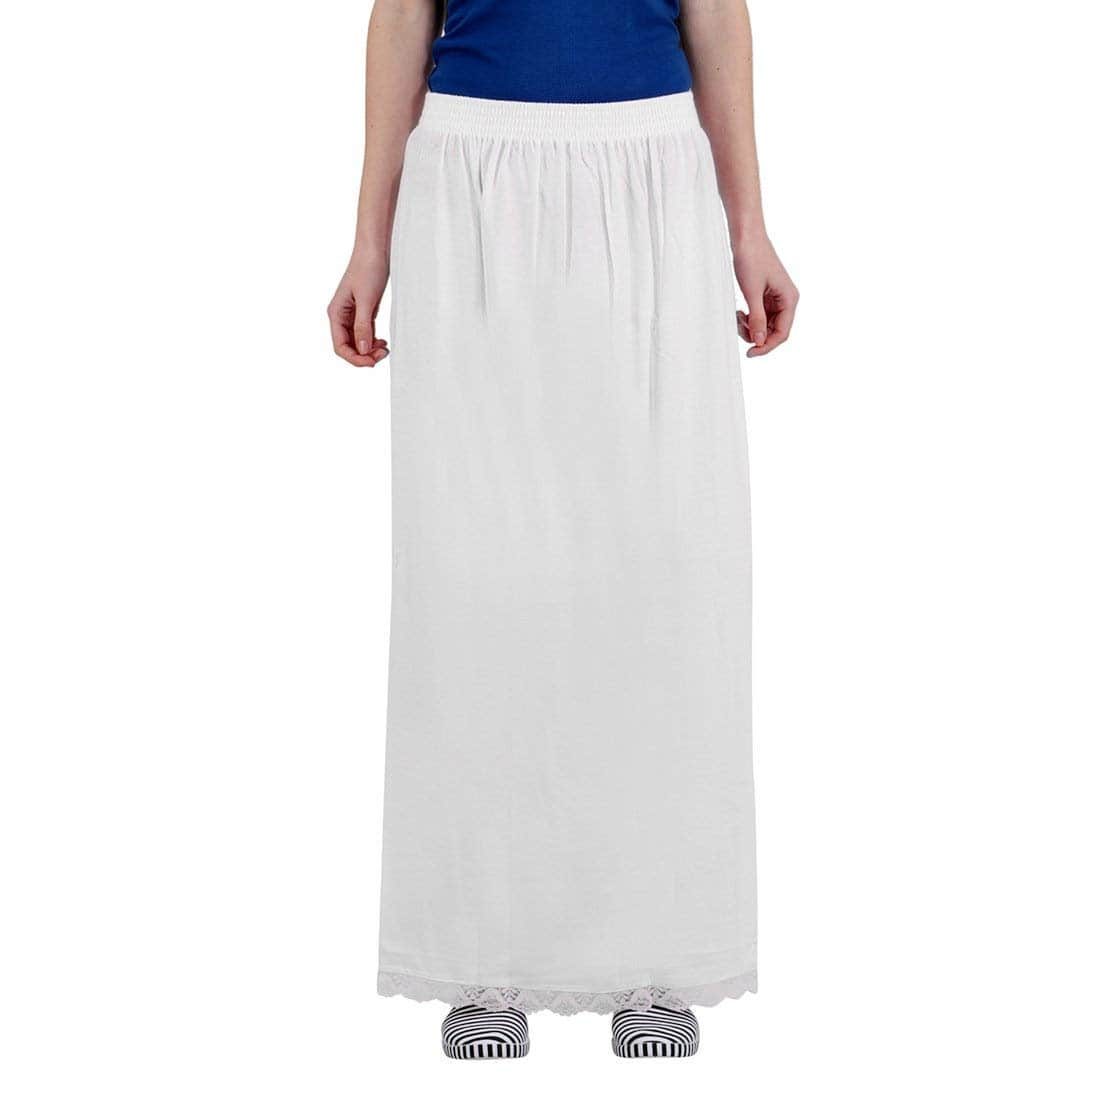 here are some products like shorts #petticoats, long skirt, lower of low price from the house Spalsh , For purchasing click on this link:- https://amzn.to/2z6h8g2  #petticoats #womenpetticoat #longskirt #apparels